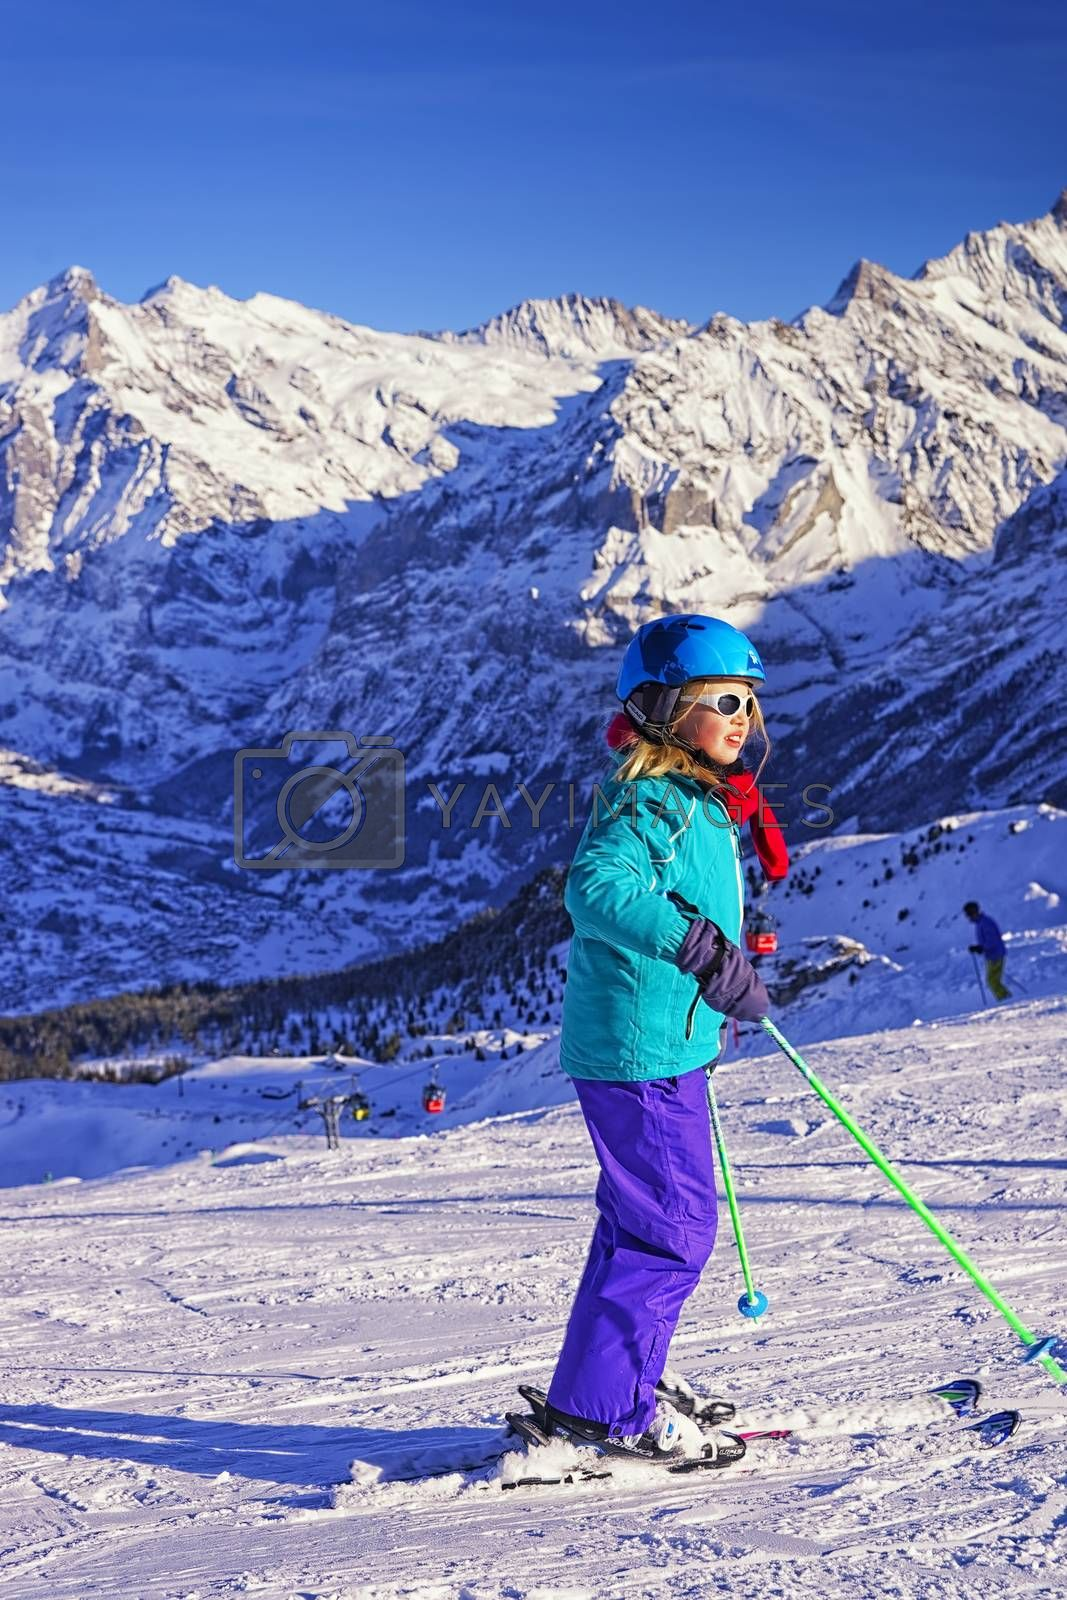 Royalty free image of Young blond girl on ski at winter sport resort in swiss alps by erix200511@mail.ru